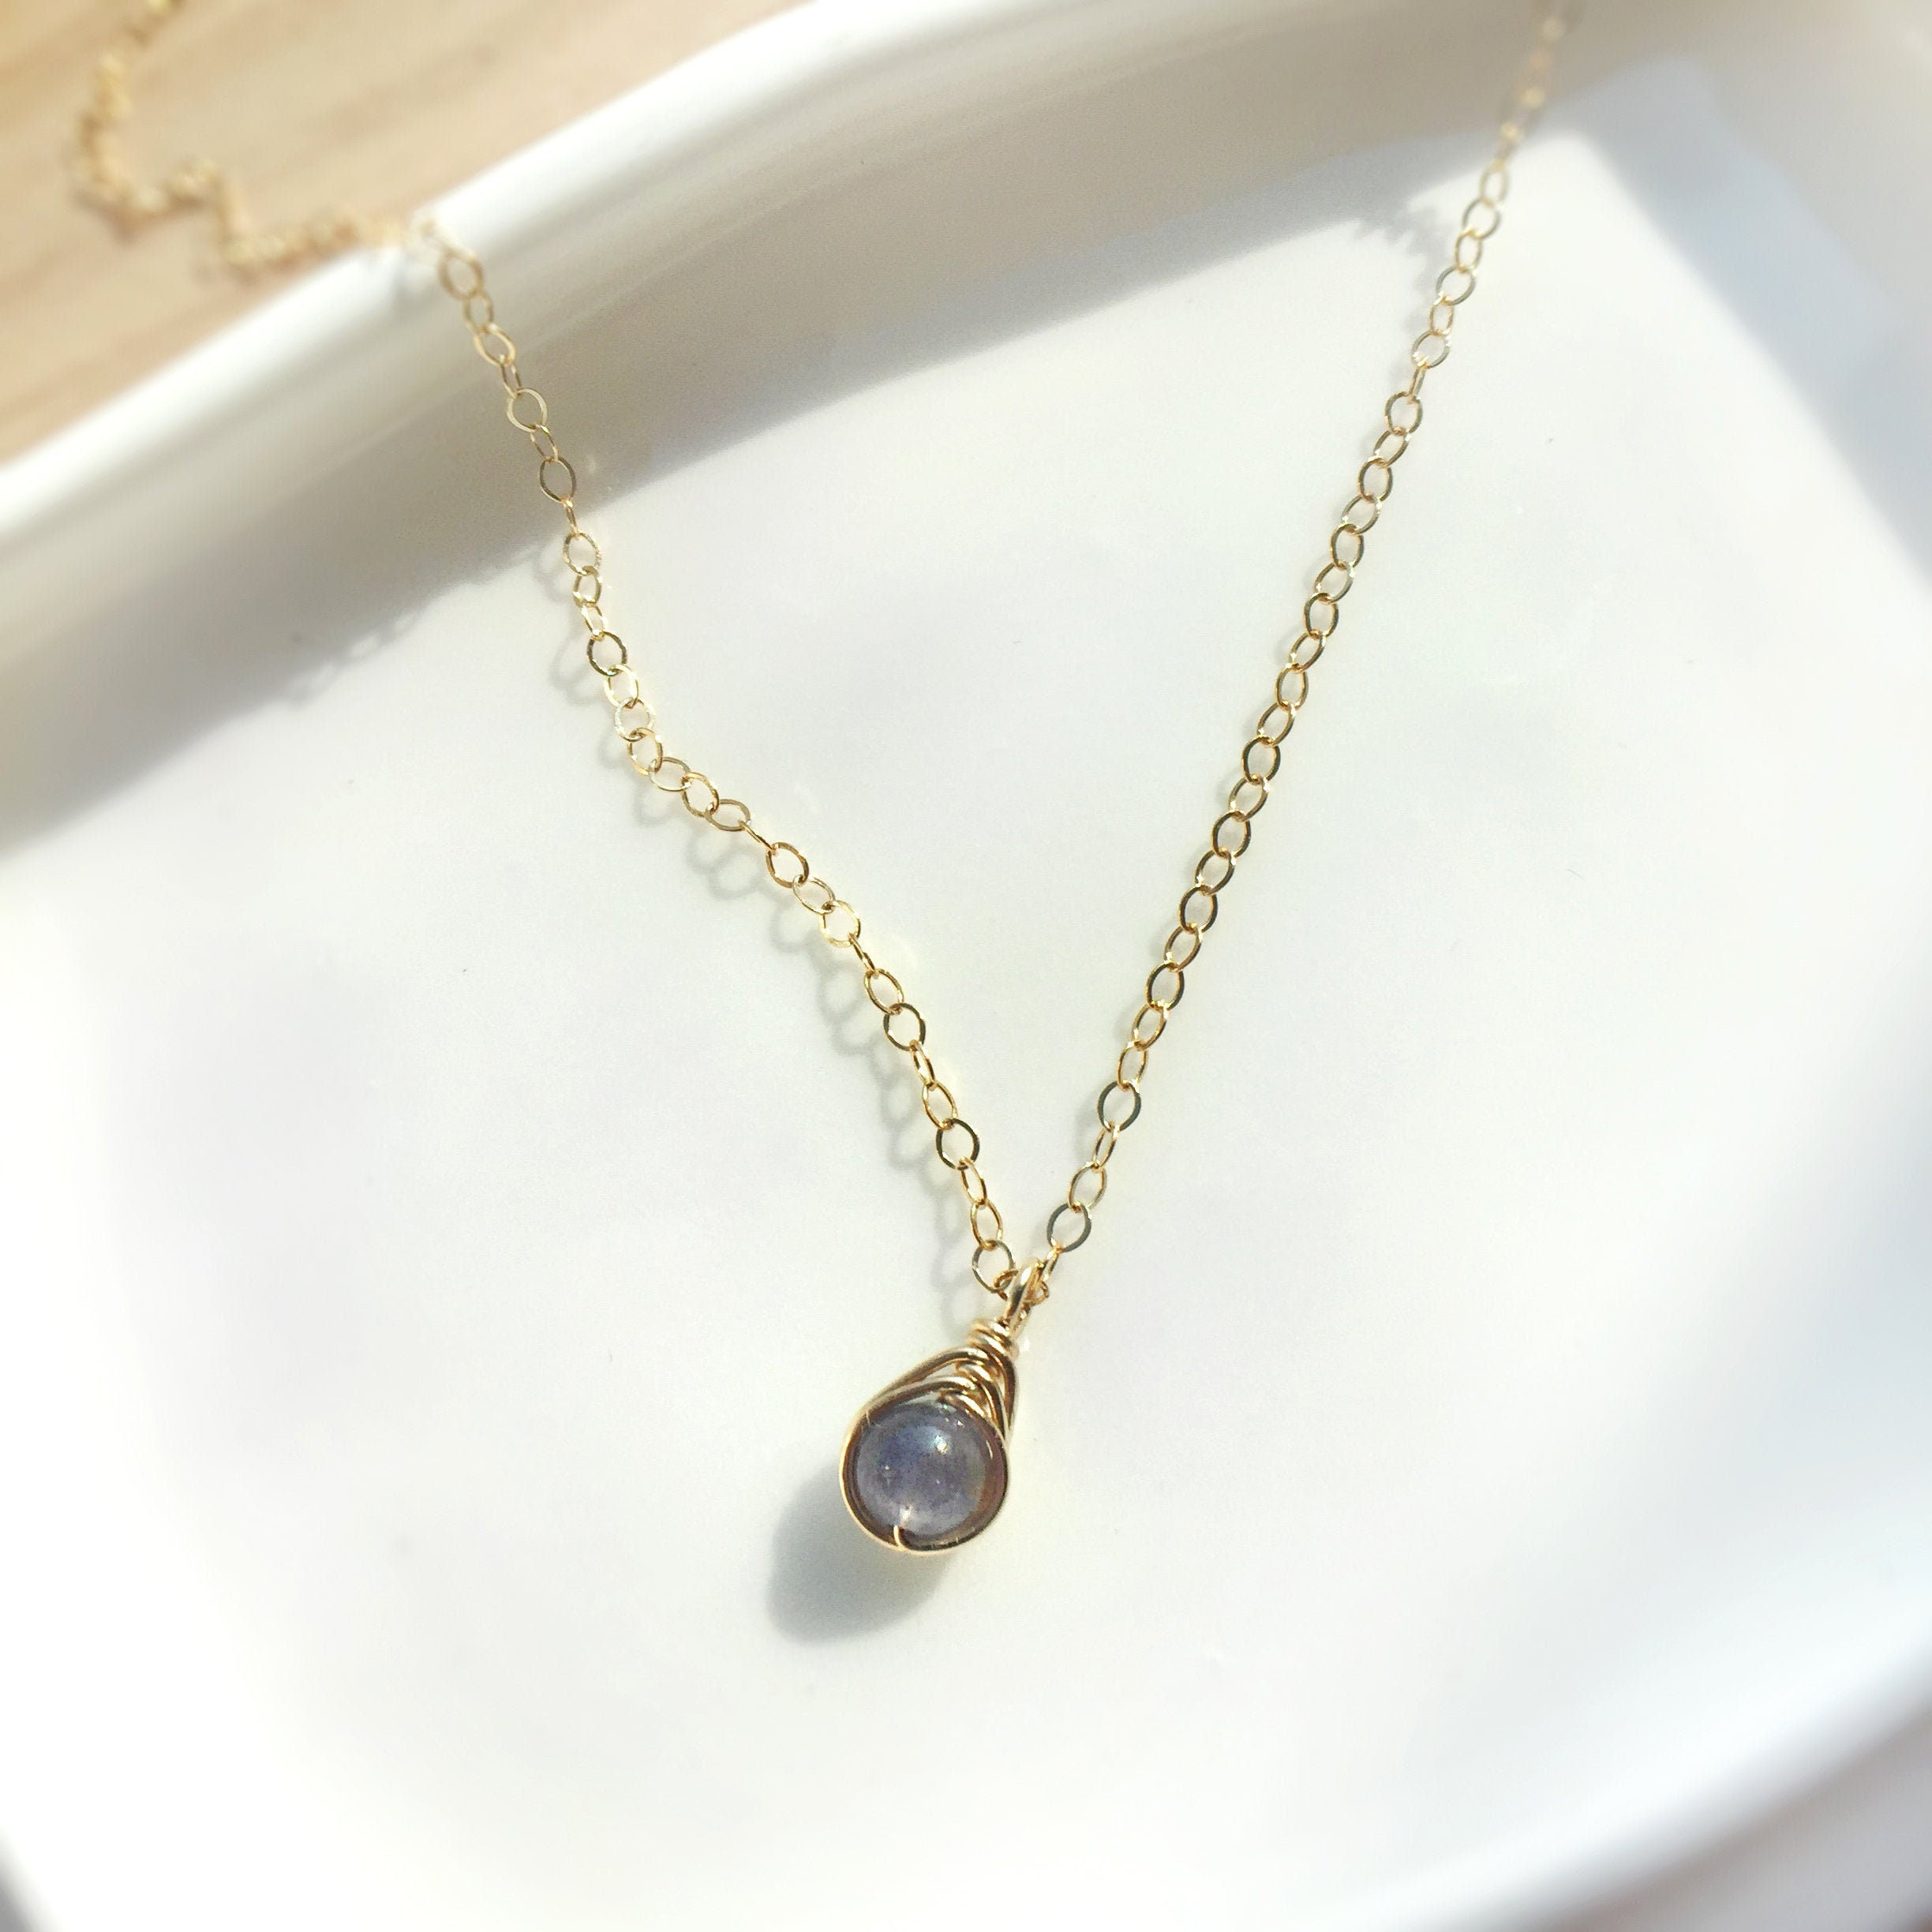 Delicate Ruby And Tanzanite 14K Gold Filled Necklace ; Boho Gold Filled Pendant Necklace;Elegant Woman Necklace;July Birthstone